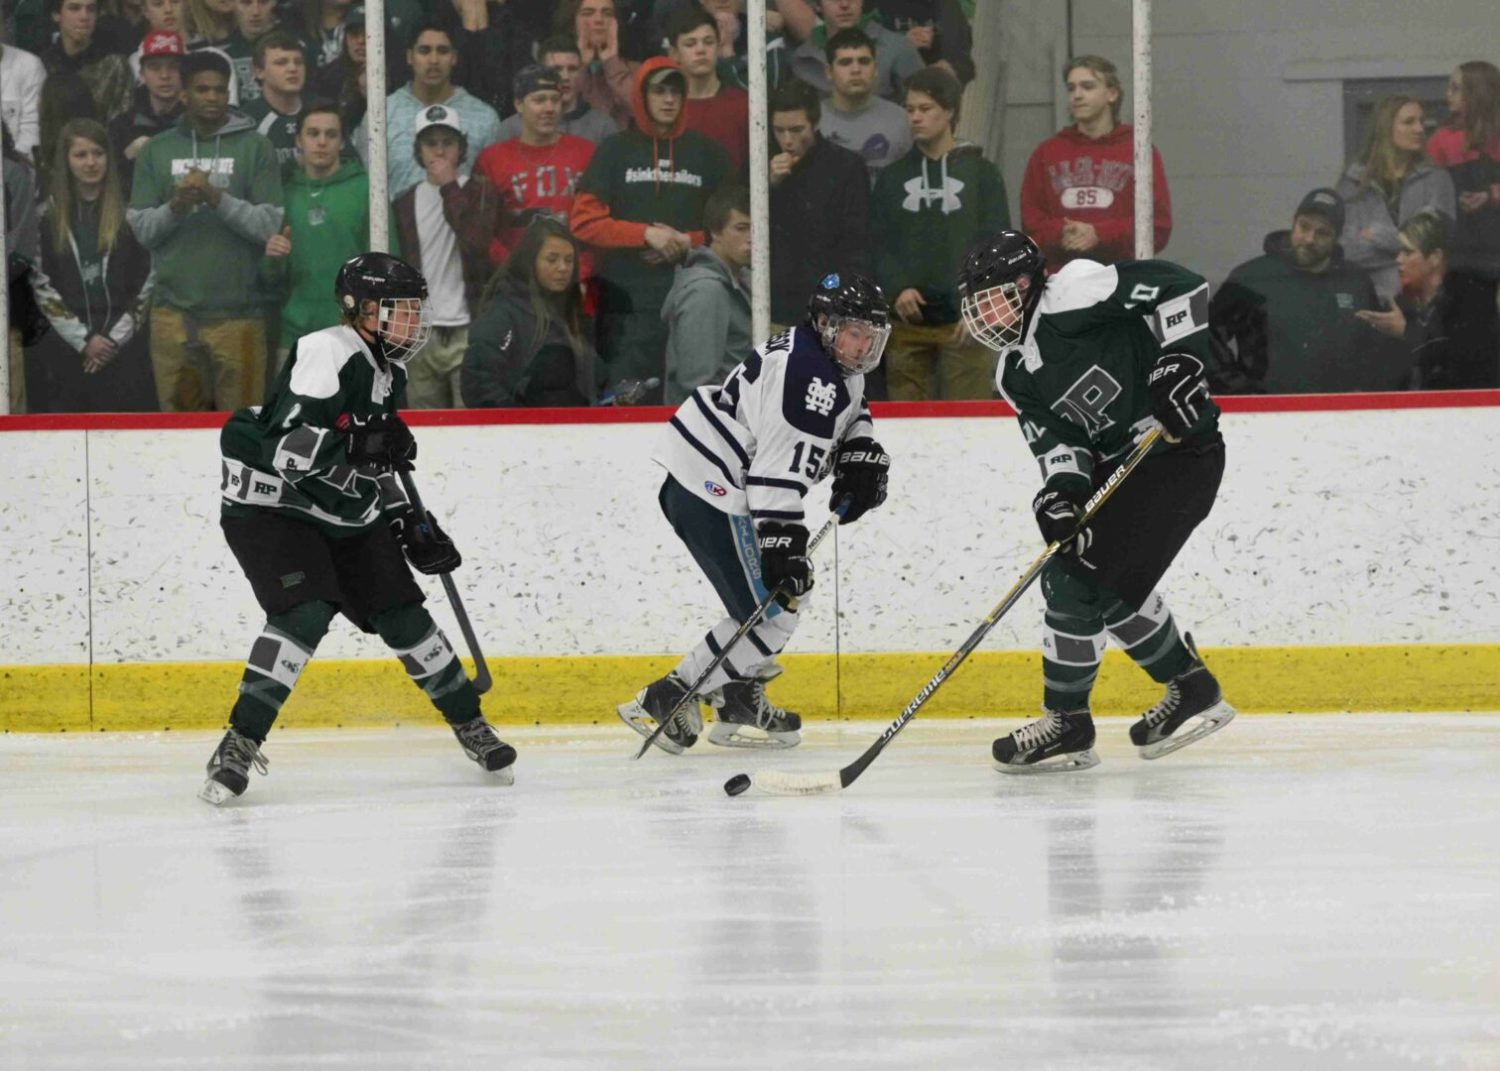 Reeths Puffer's Mason Convertini (10) skates the puck past Monas Shores' Spencer Anderson (15). (photo/Eric Sturr)